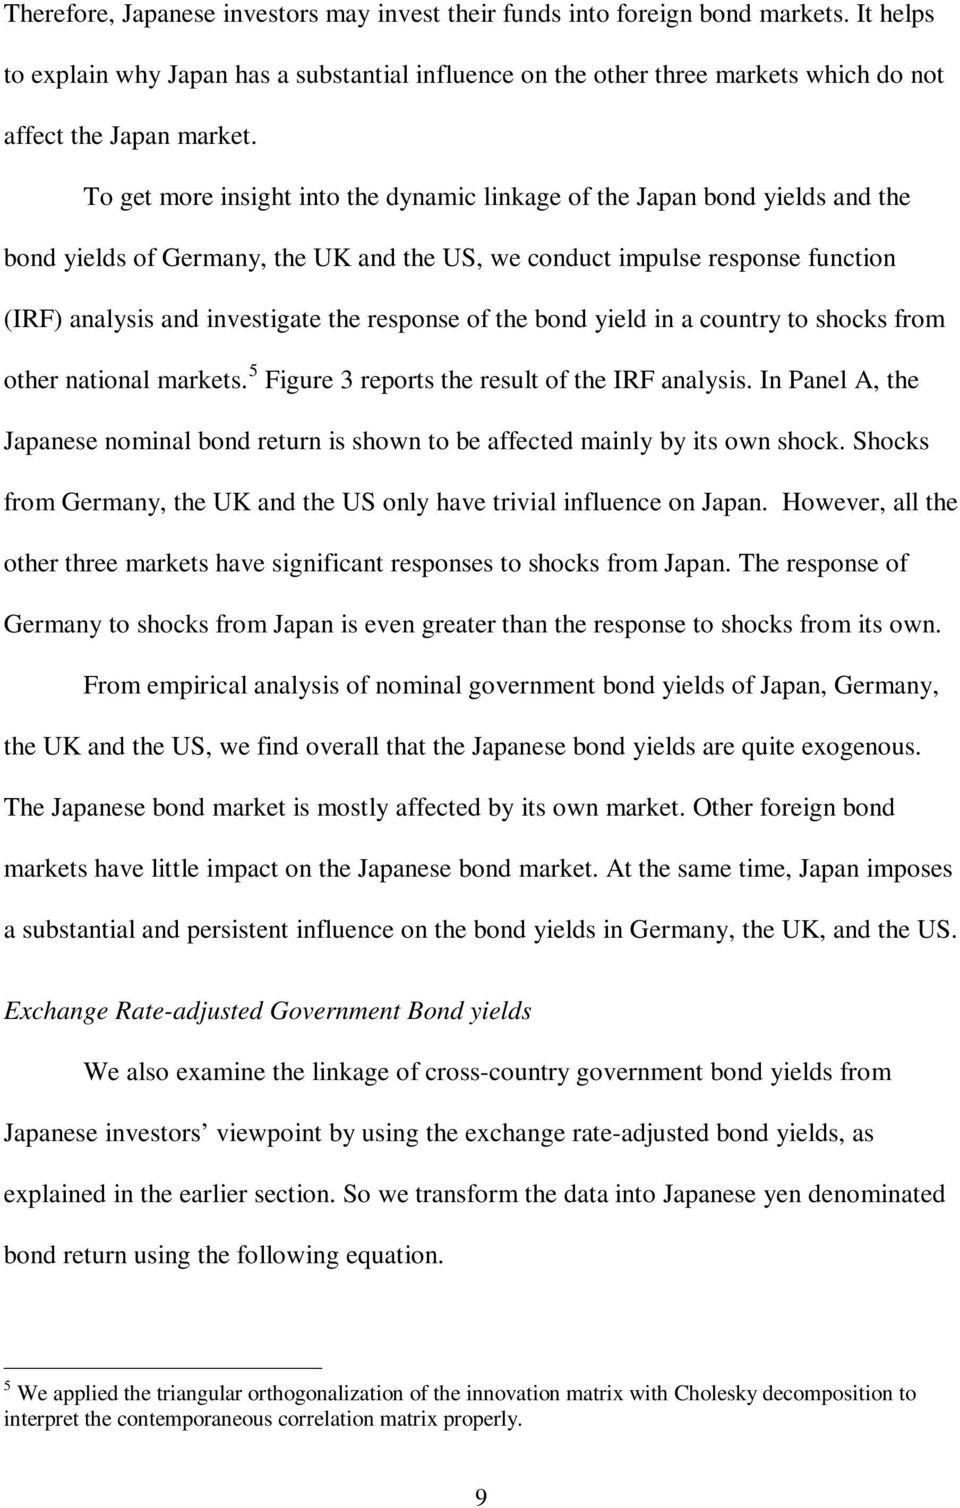 To get more insight into the dynamic linkage of the Japan bond yields and the bond yields of Germany, the UK and the US, we conduct impulse response function (IRF) analysis and investigate the